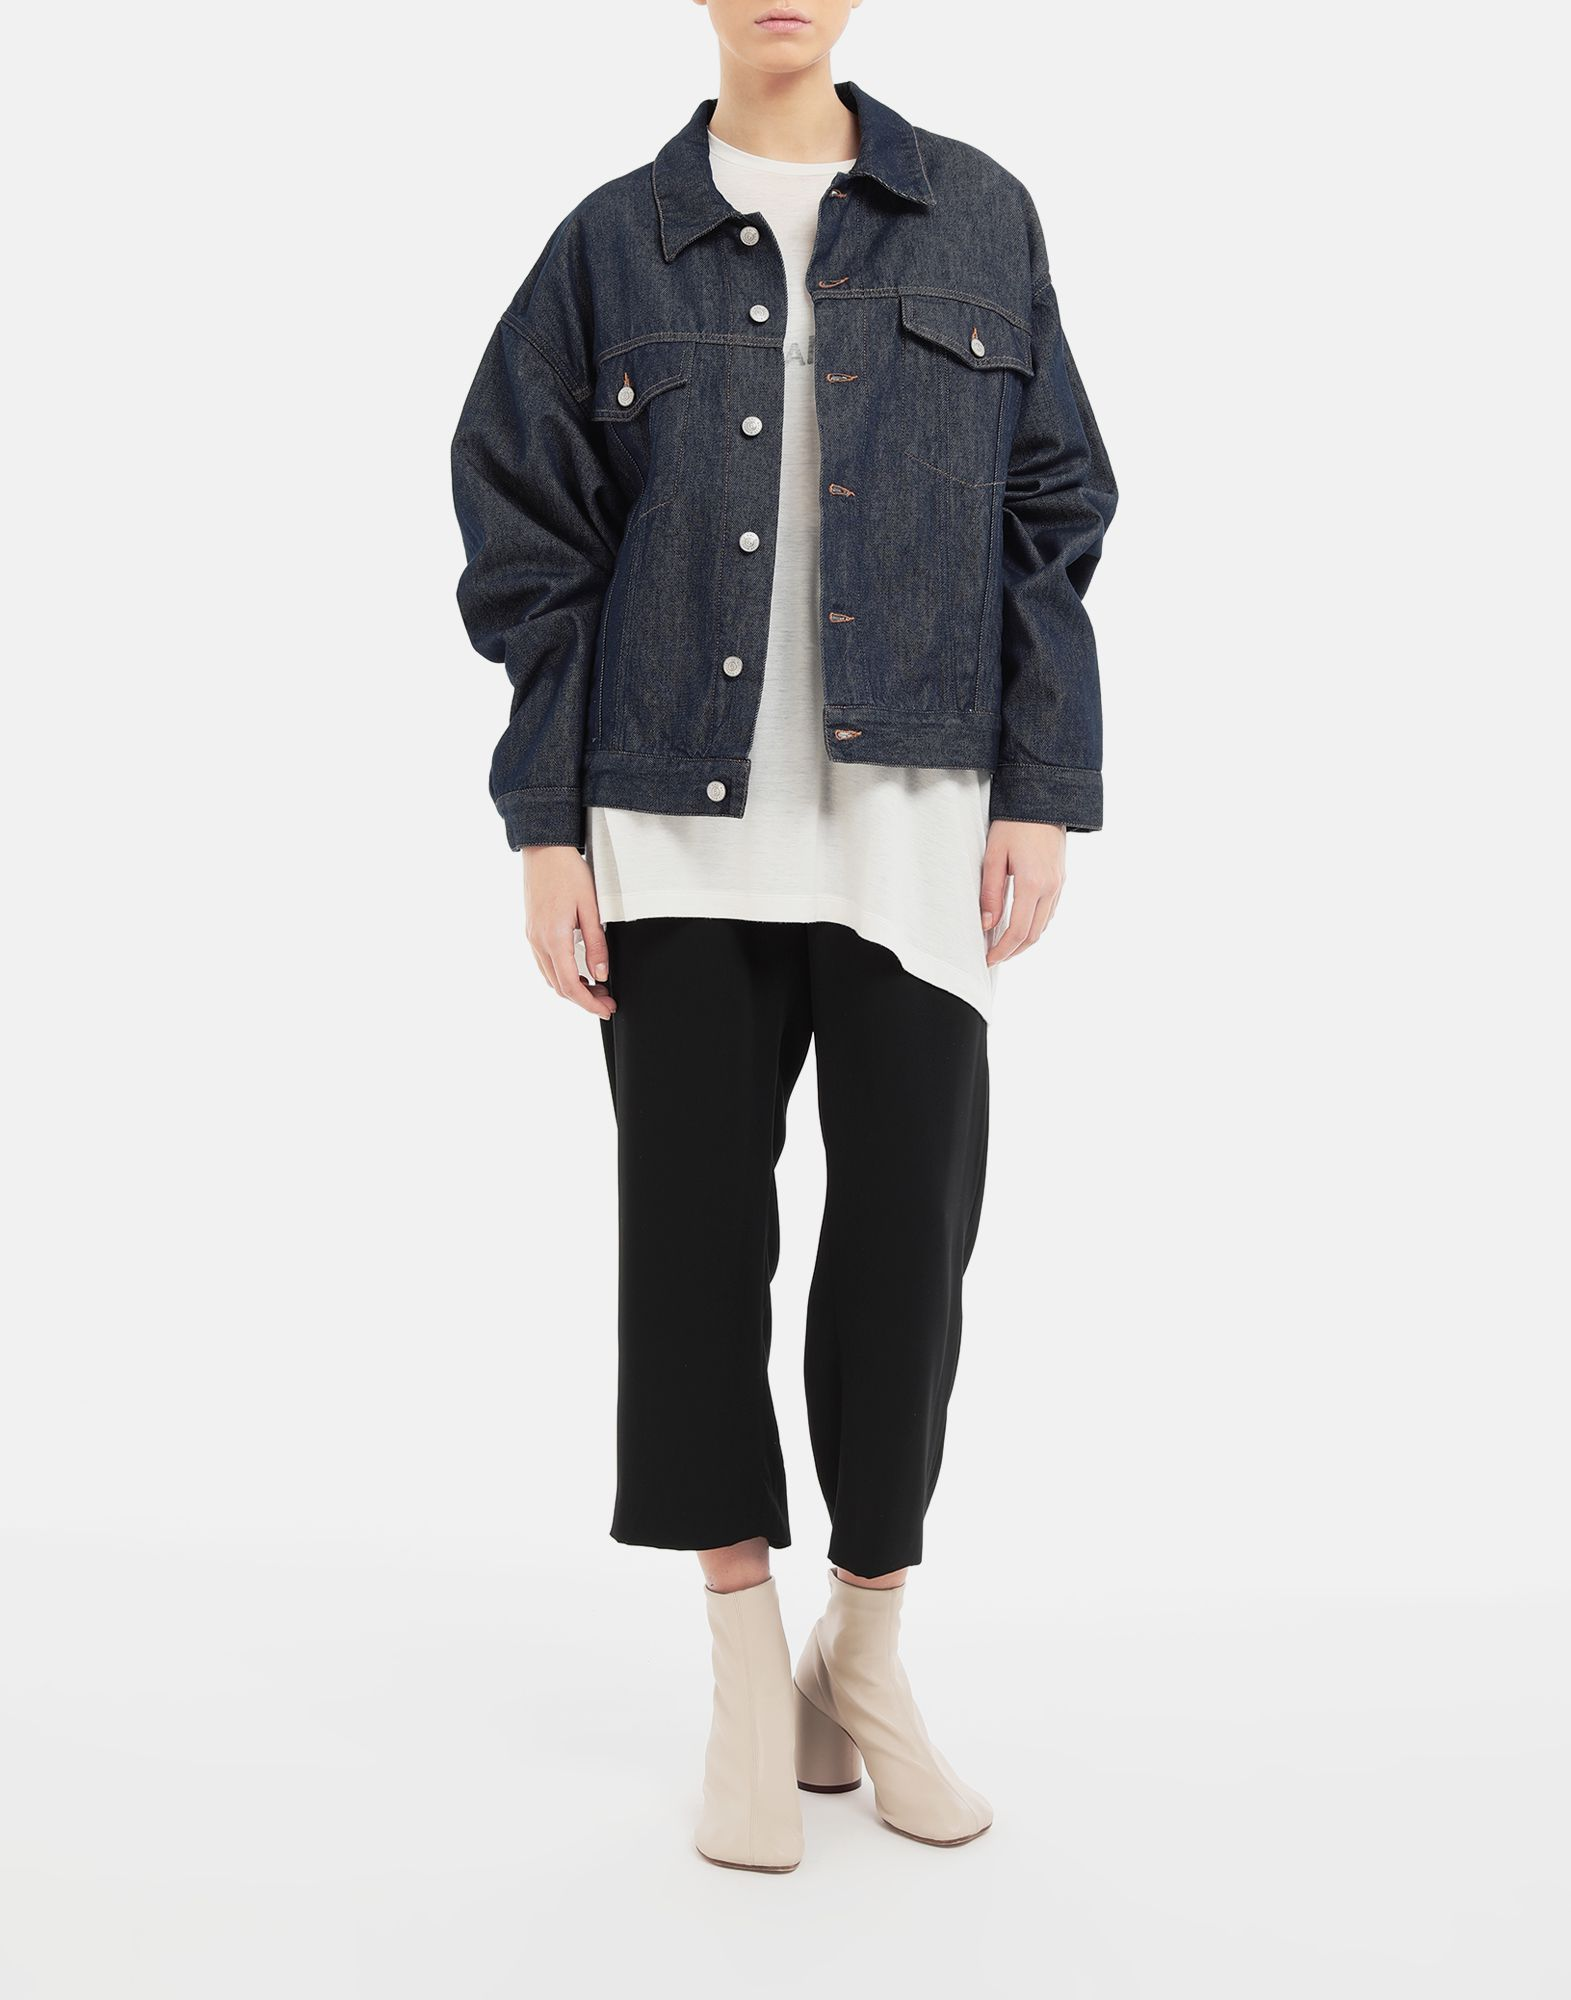 MM6 MAISON MARGIELA Oversized denim jacket Light jacket Woman d